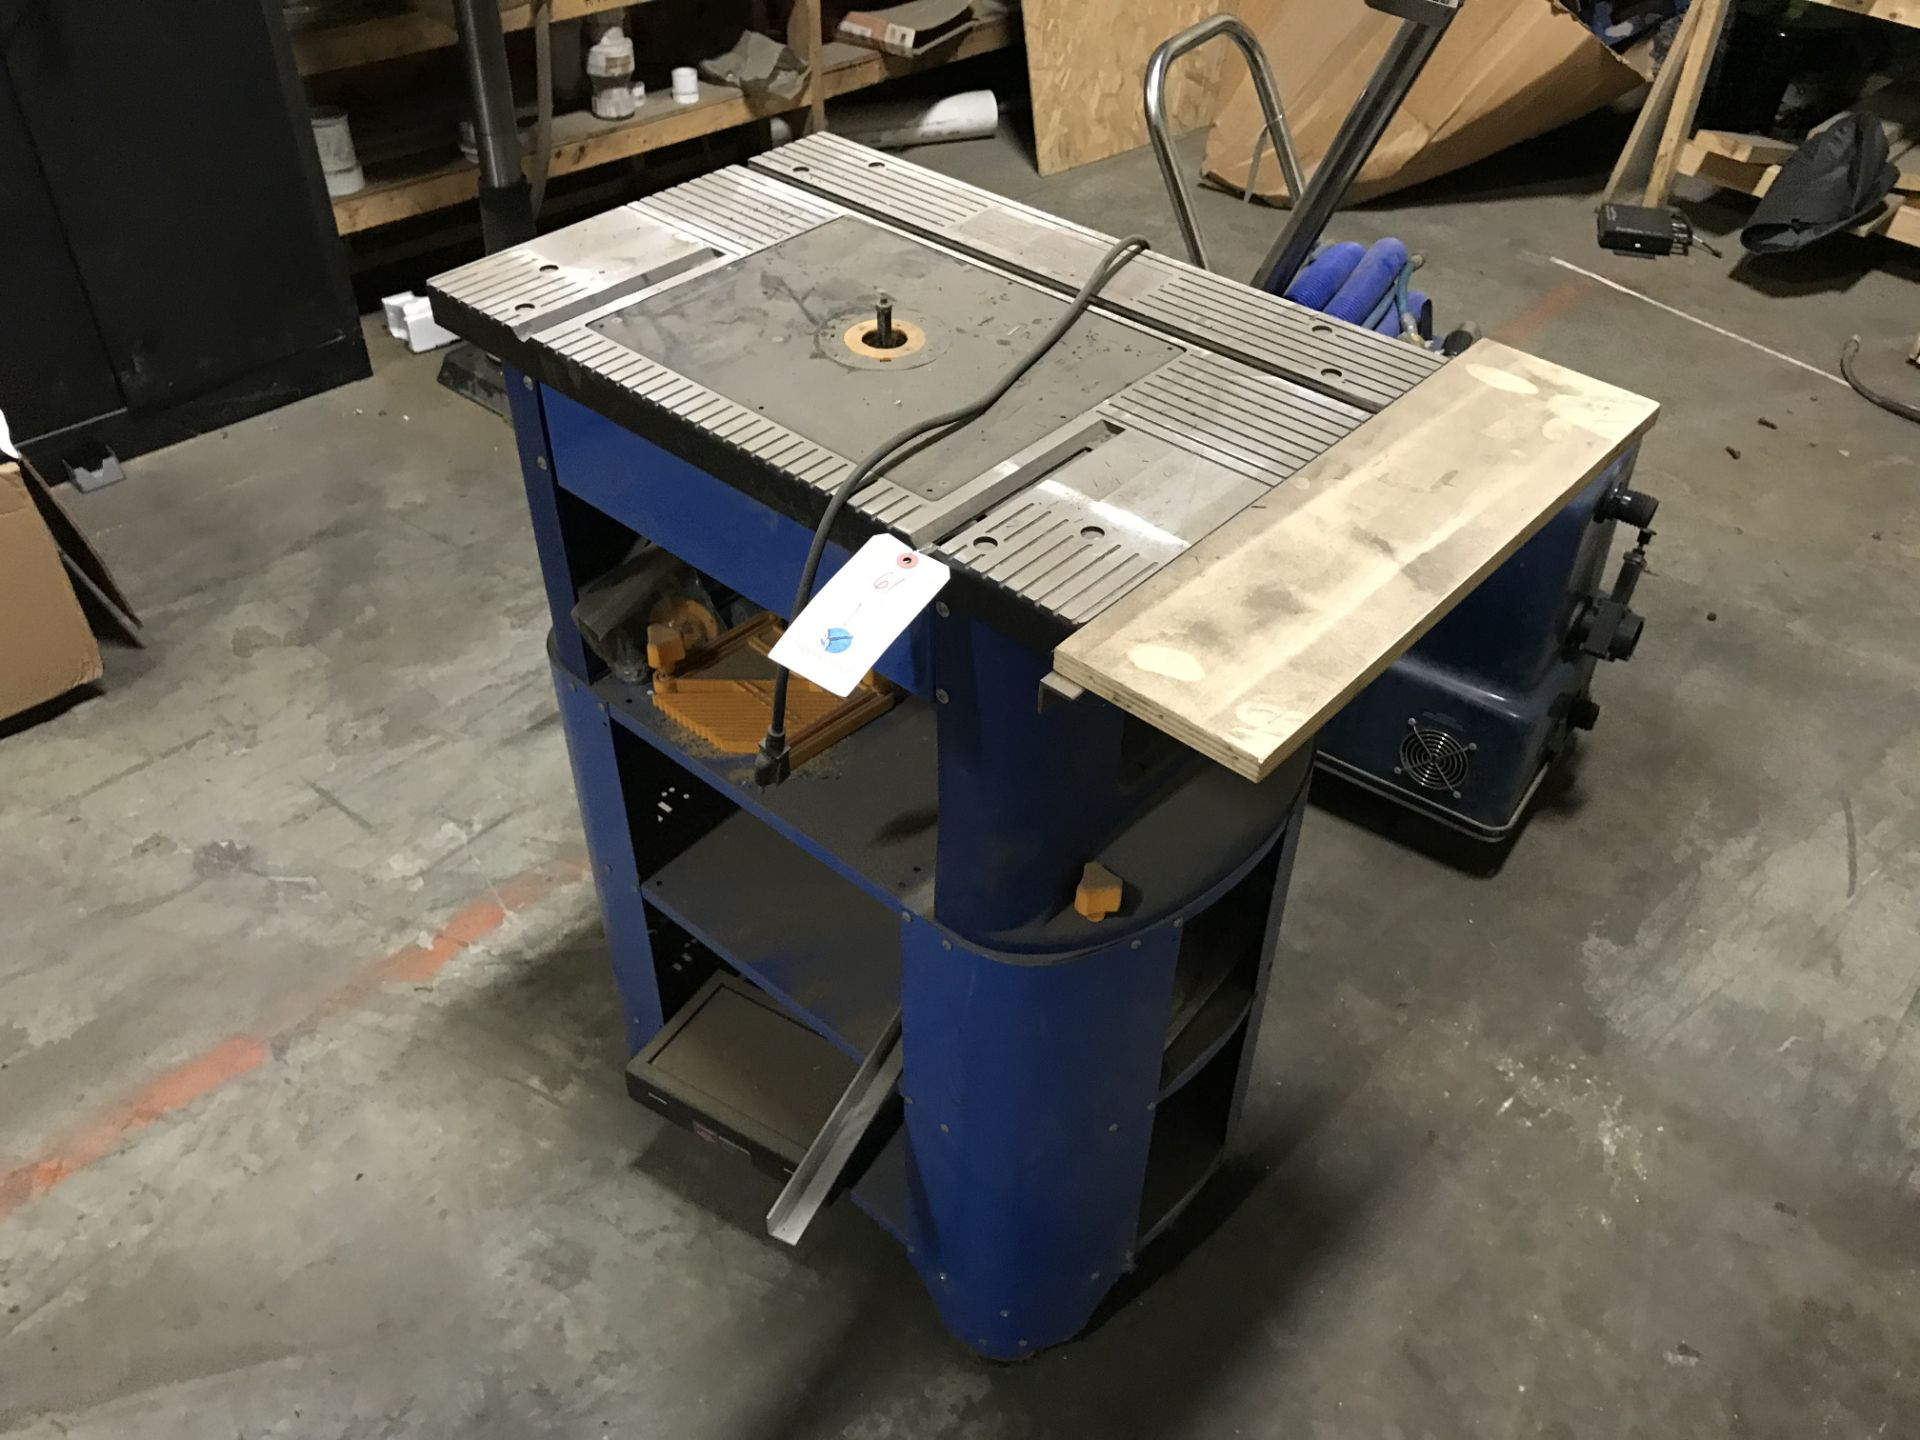 Lot 61 - Central Machinery Router Table w/Stand